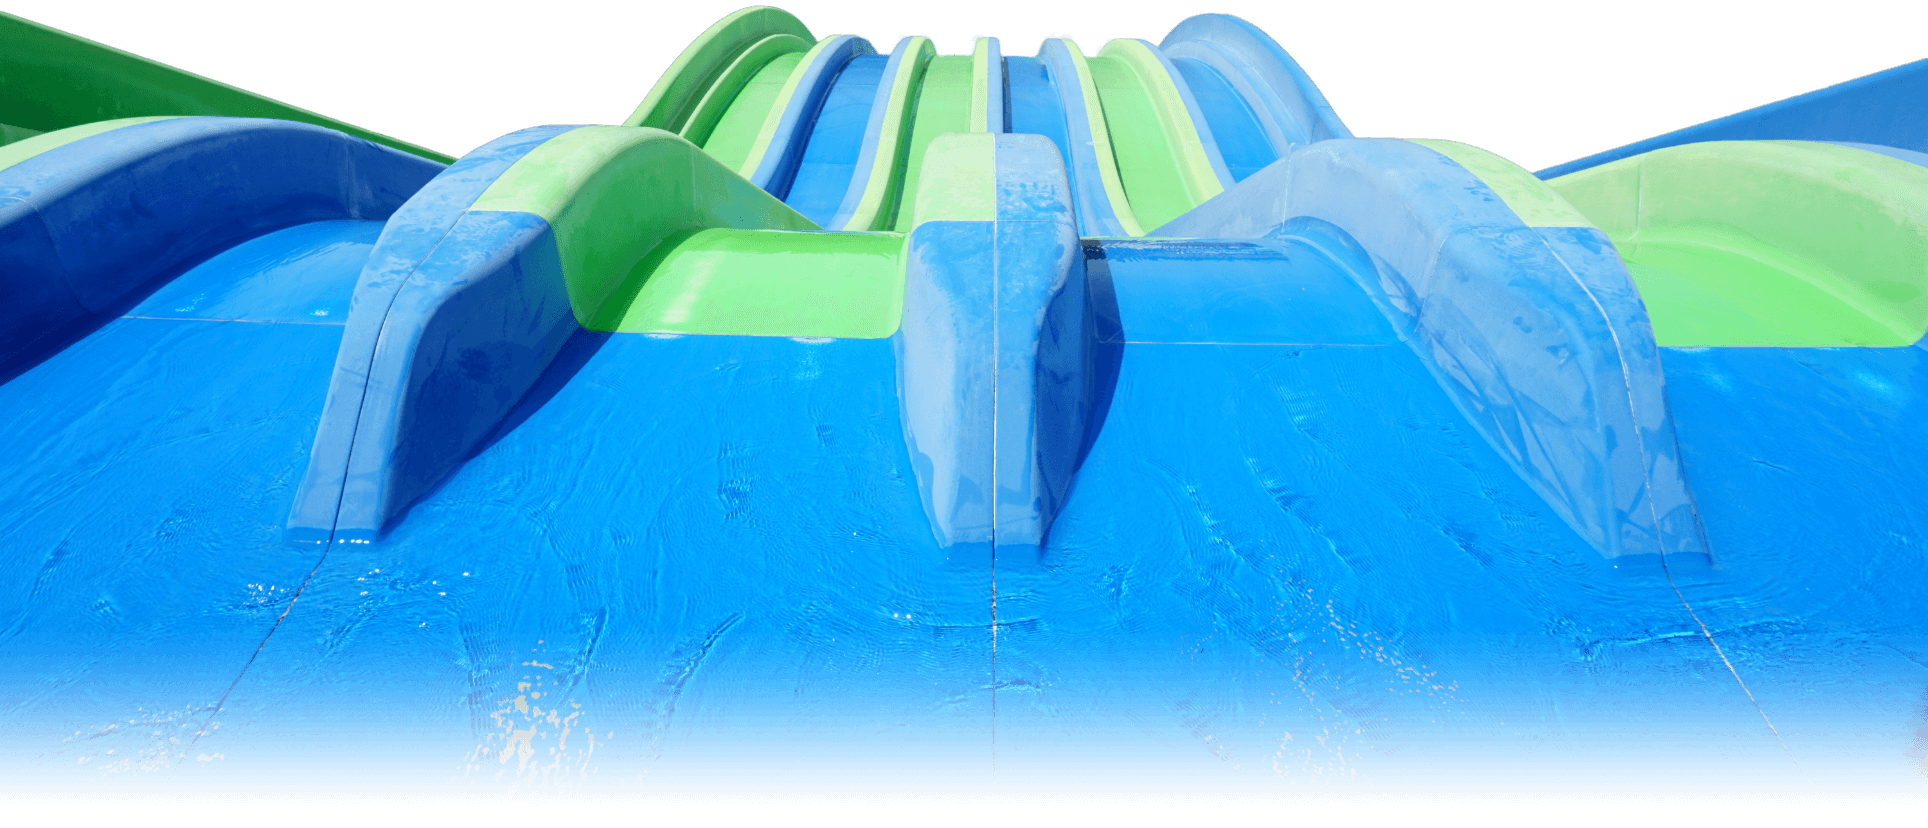 blue and green waterslide